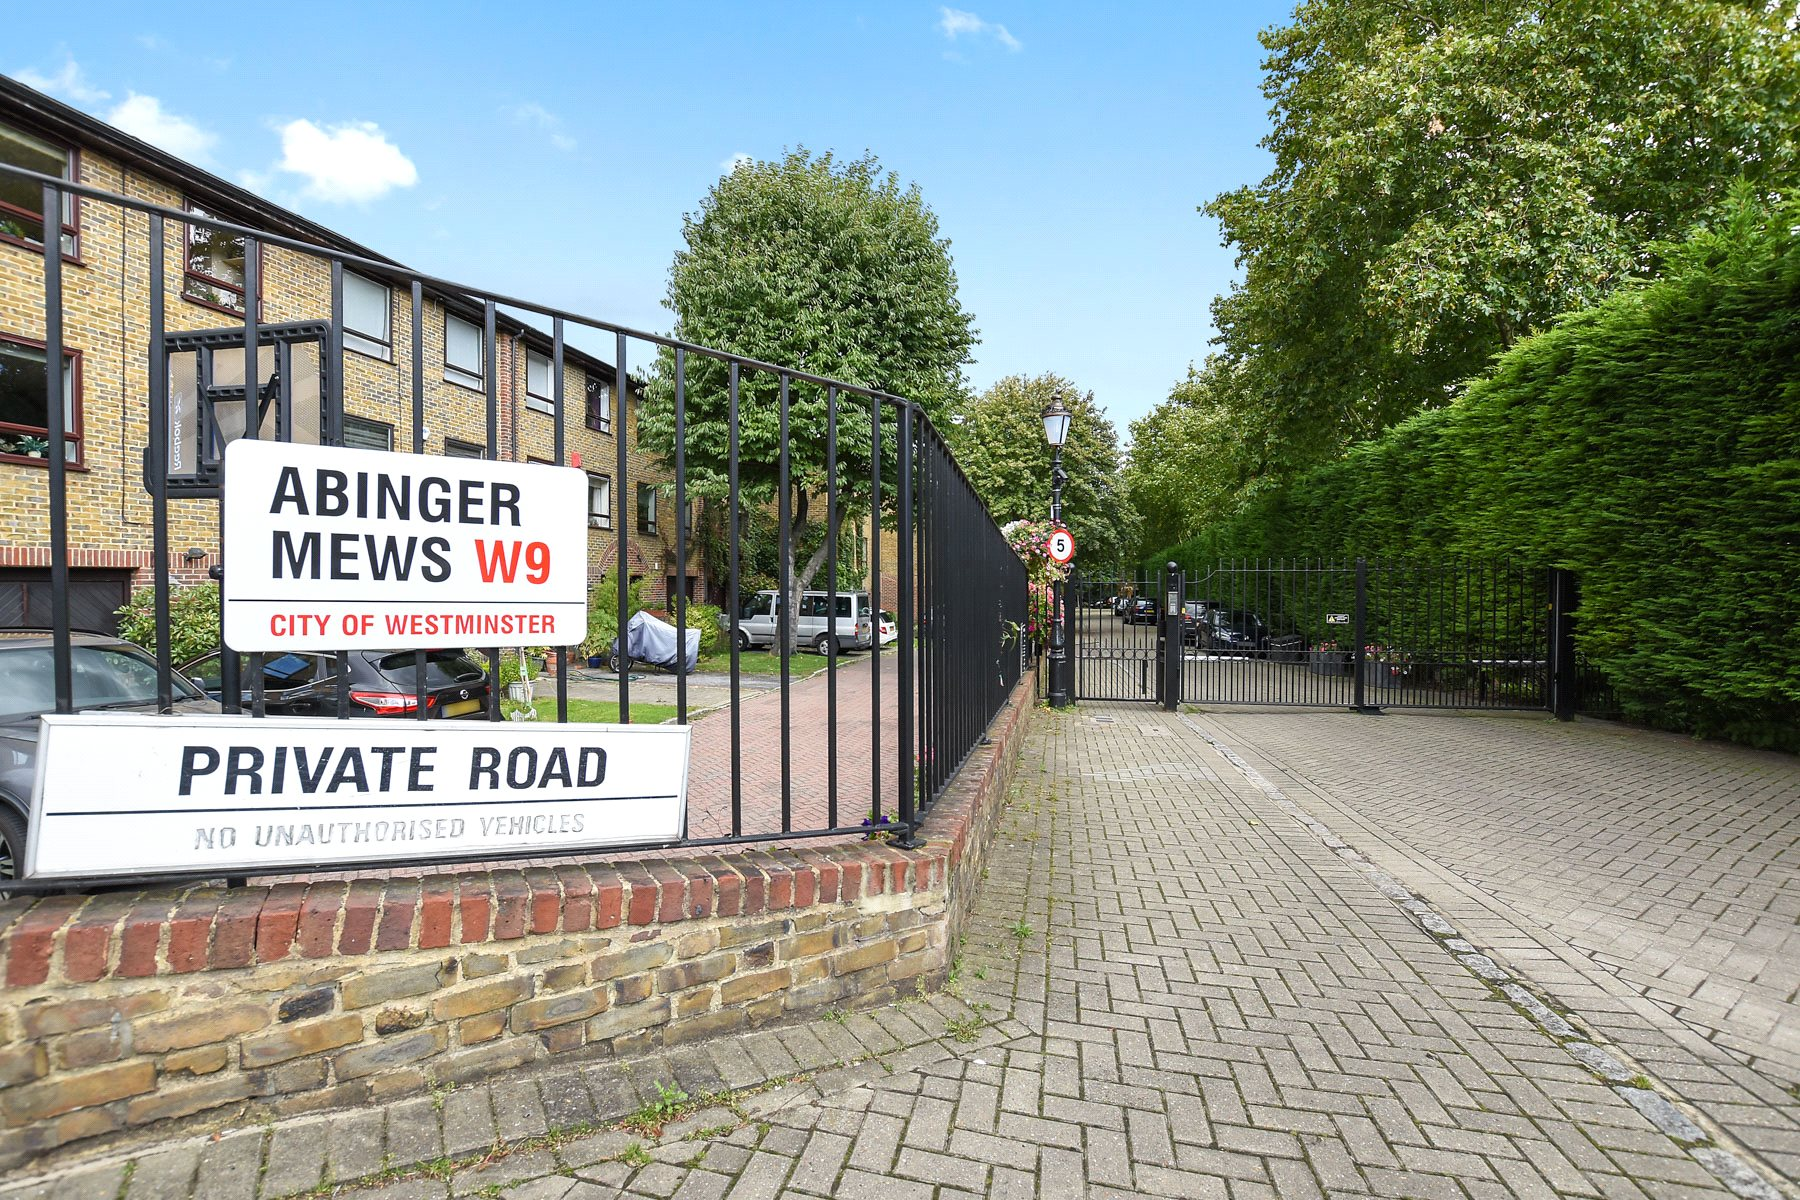 4 Bedrooms House for sale in Abinger Mews, Maida Vale, London, W9